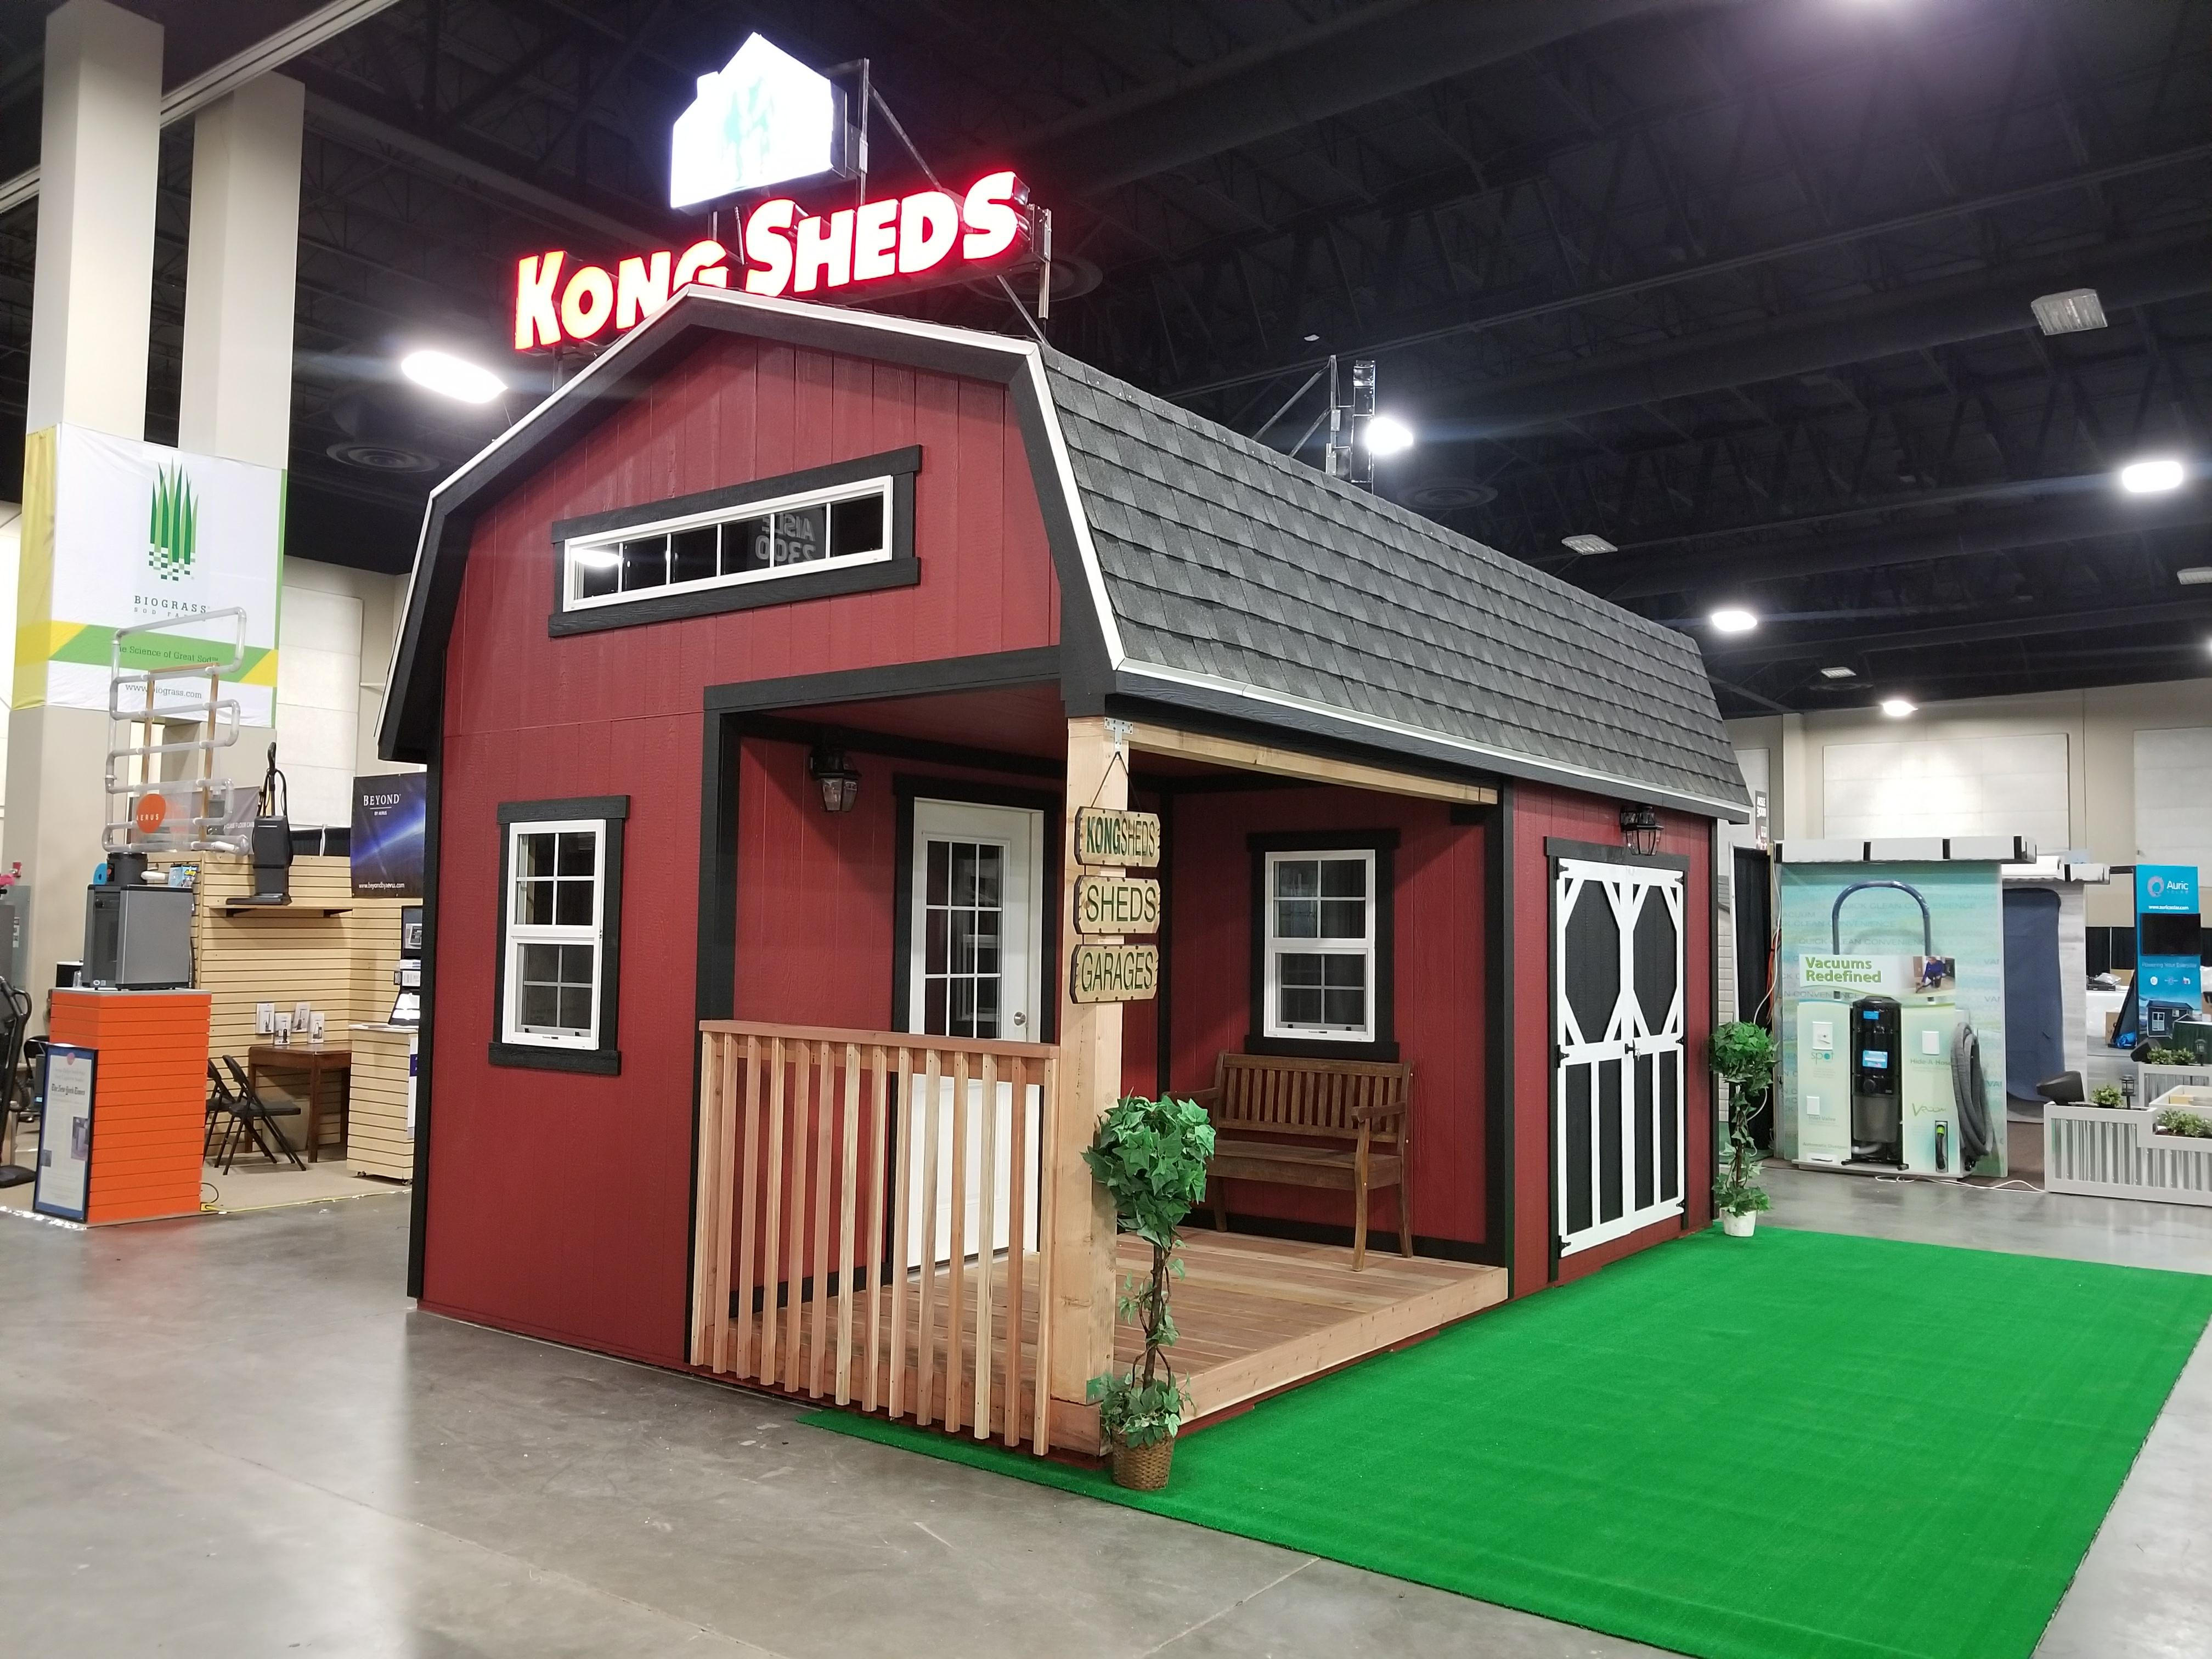 into usa easy home ultra sheds series portable tiny shed storage houses buildings turn